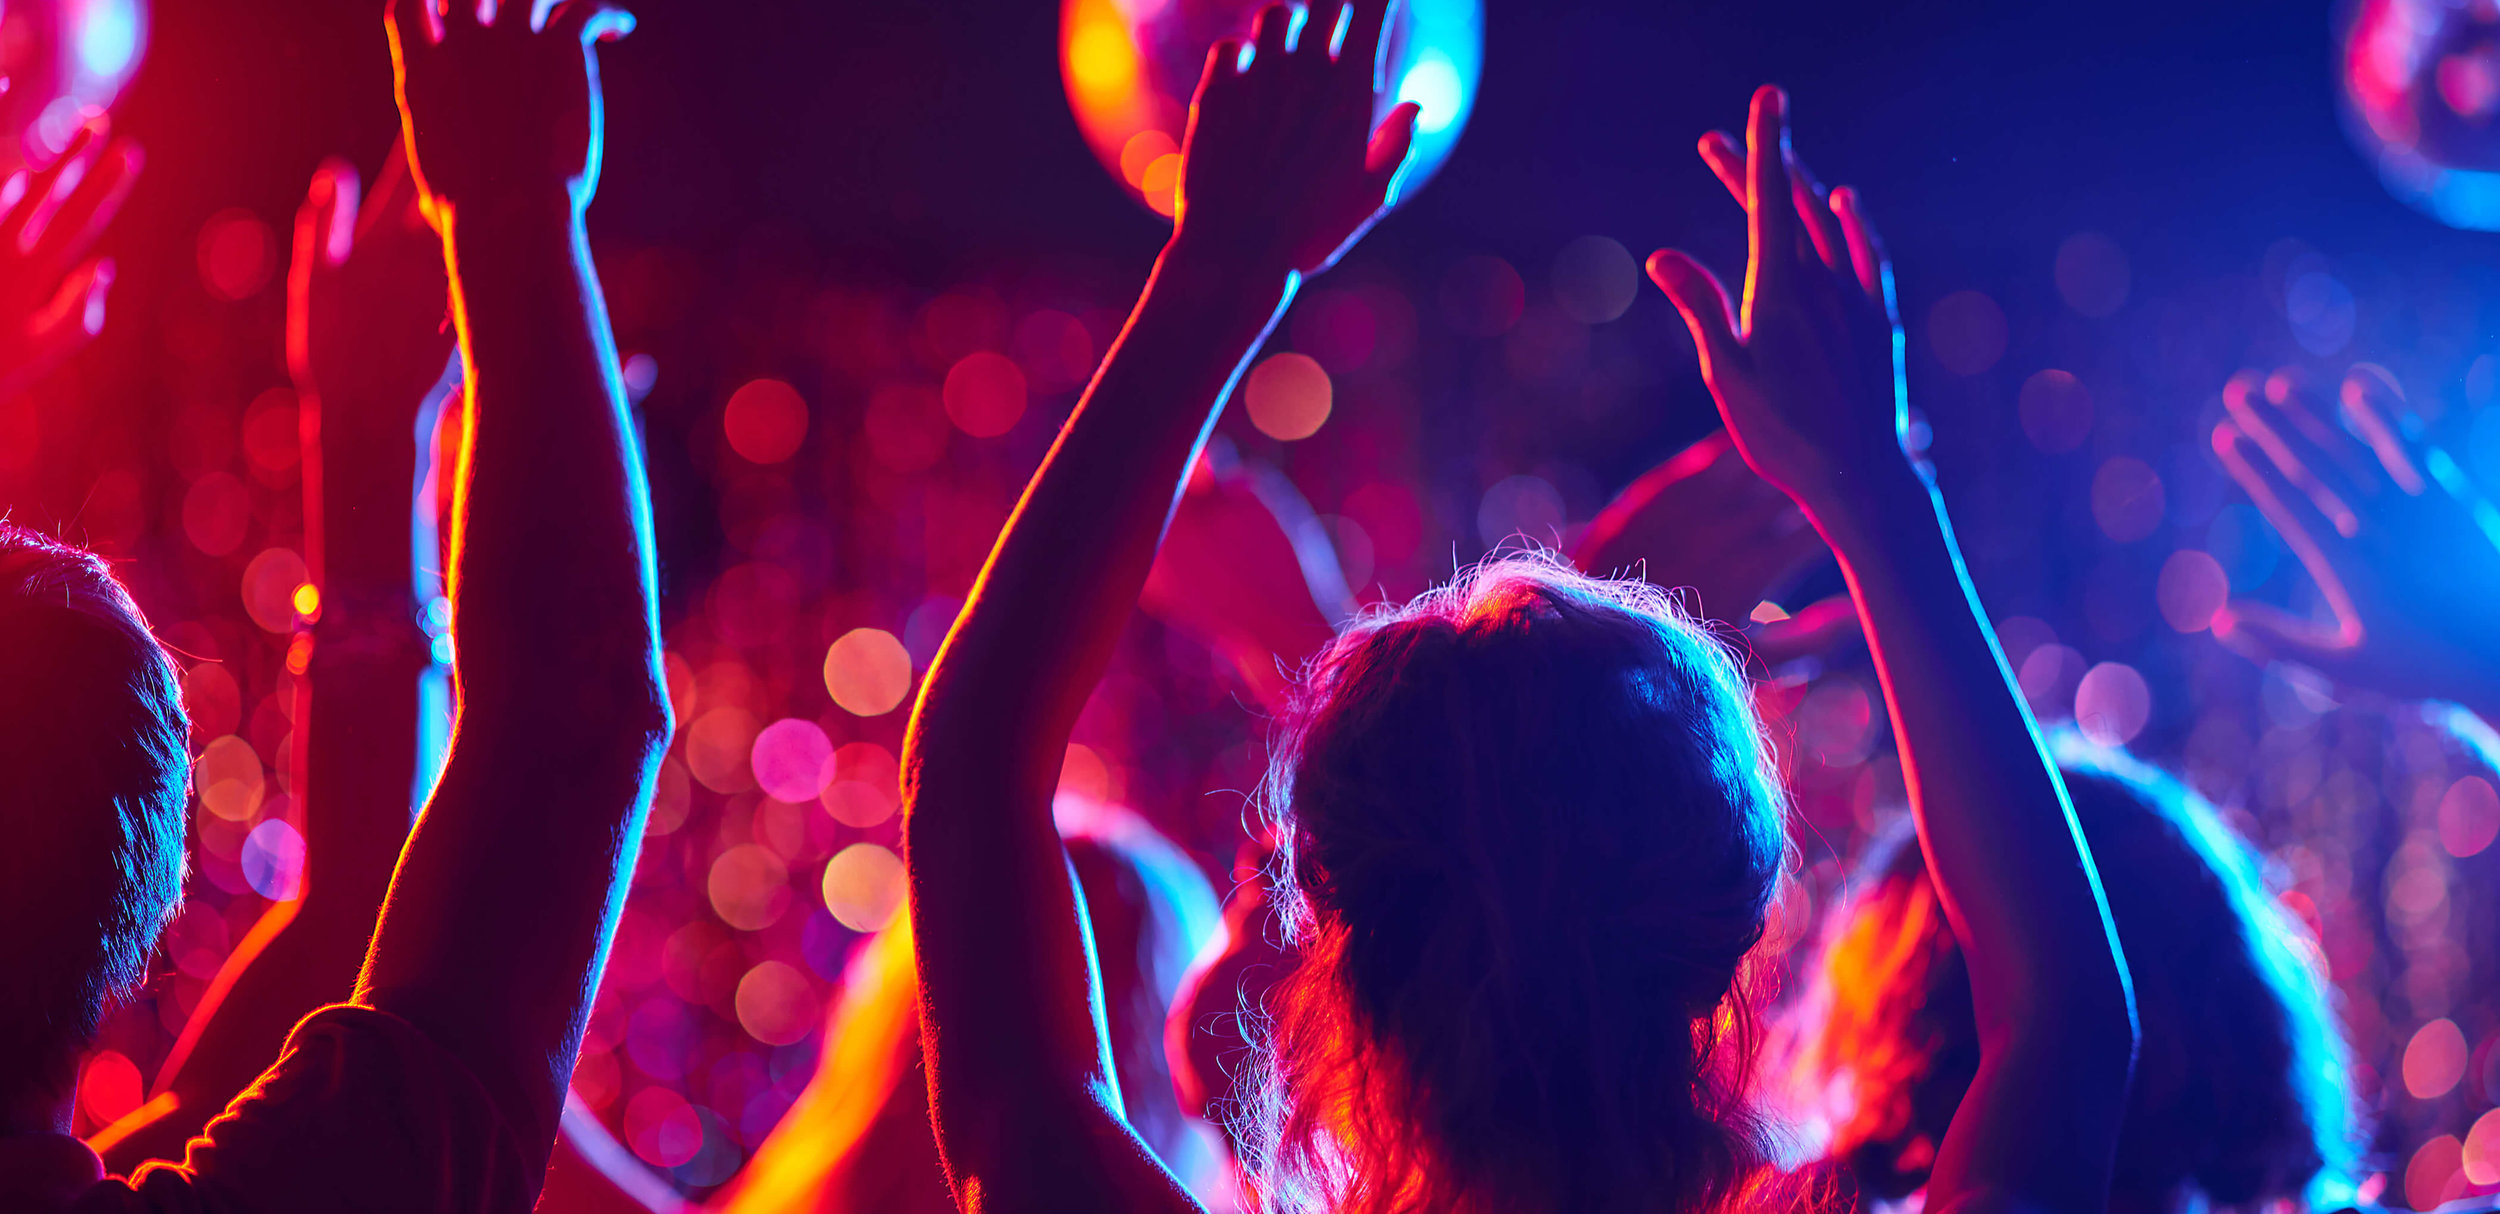 Welcome to the jungle! We invite you to light up your night with this electrifying glow in the dark party! -